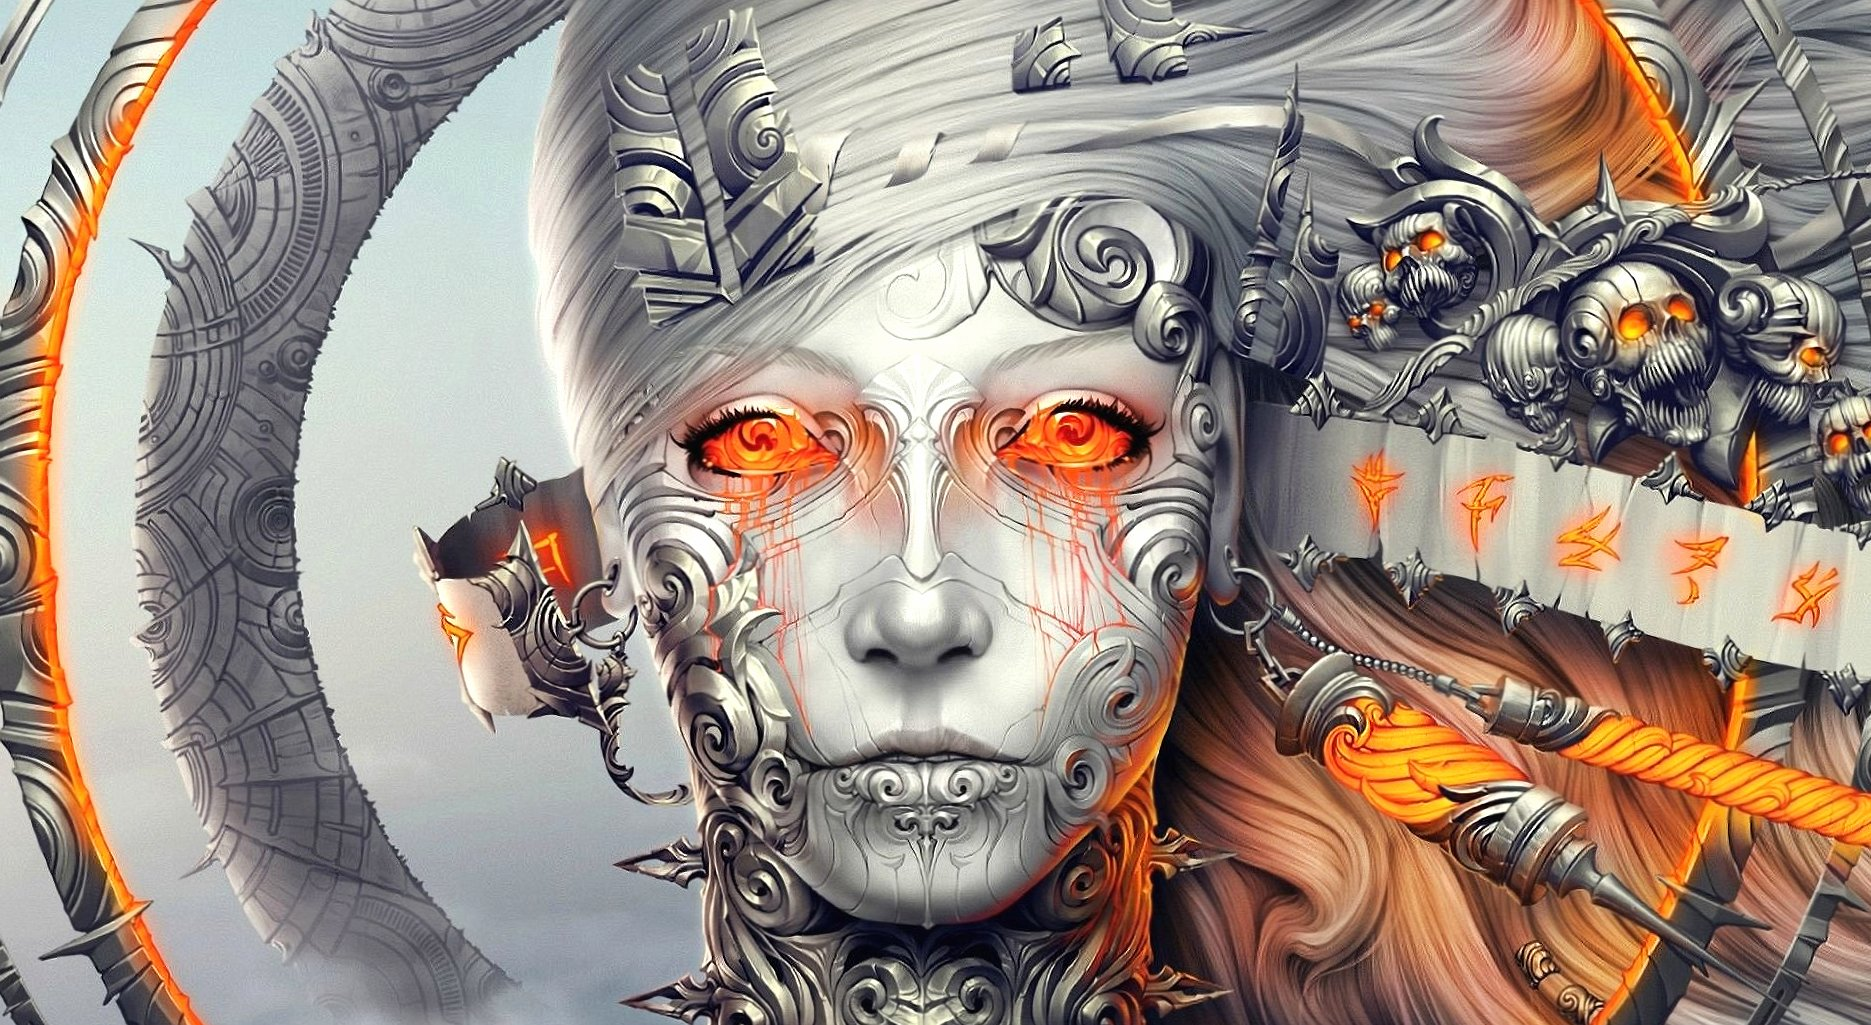 Artificial woman giger style wallpapers HD quality